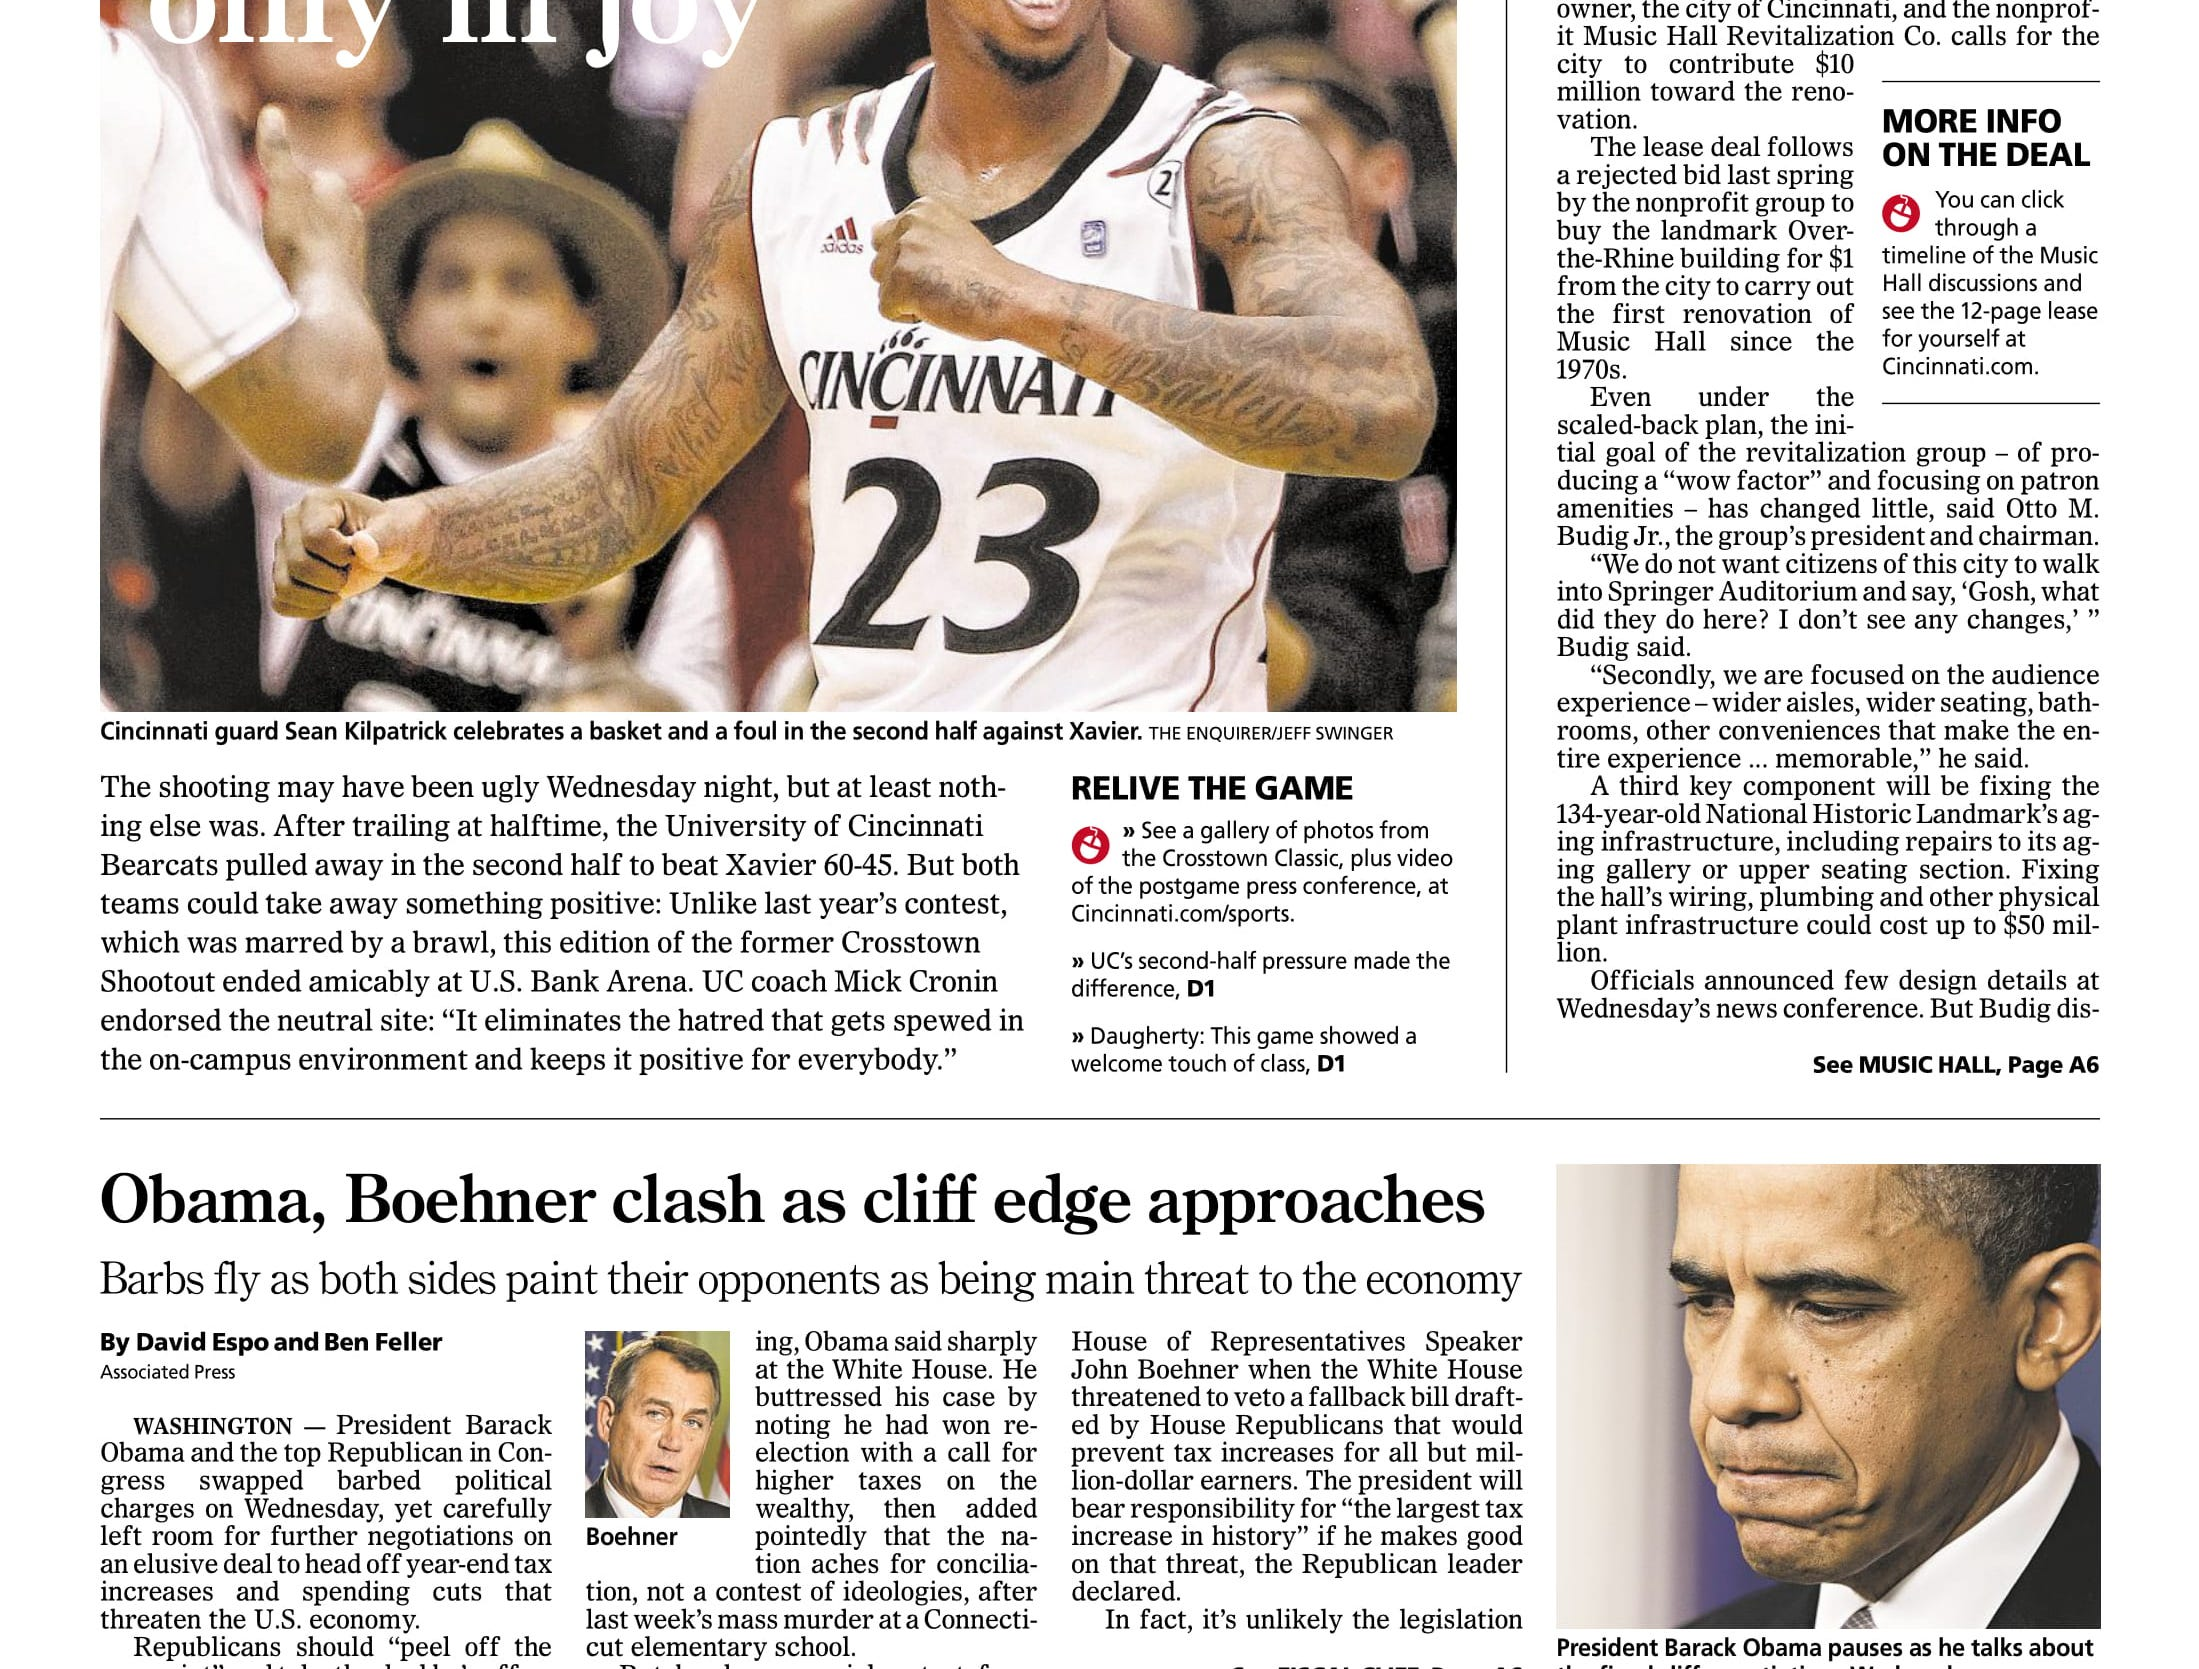 The 'Crosstown Classic' was moved to U.S. Bank Arena for the 2012-13 edition, a 60-45 win.